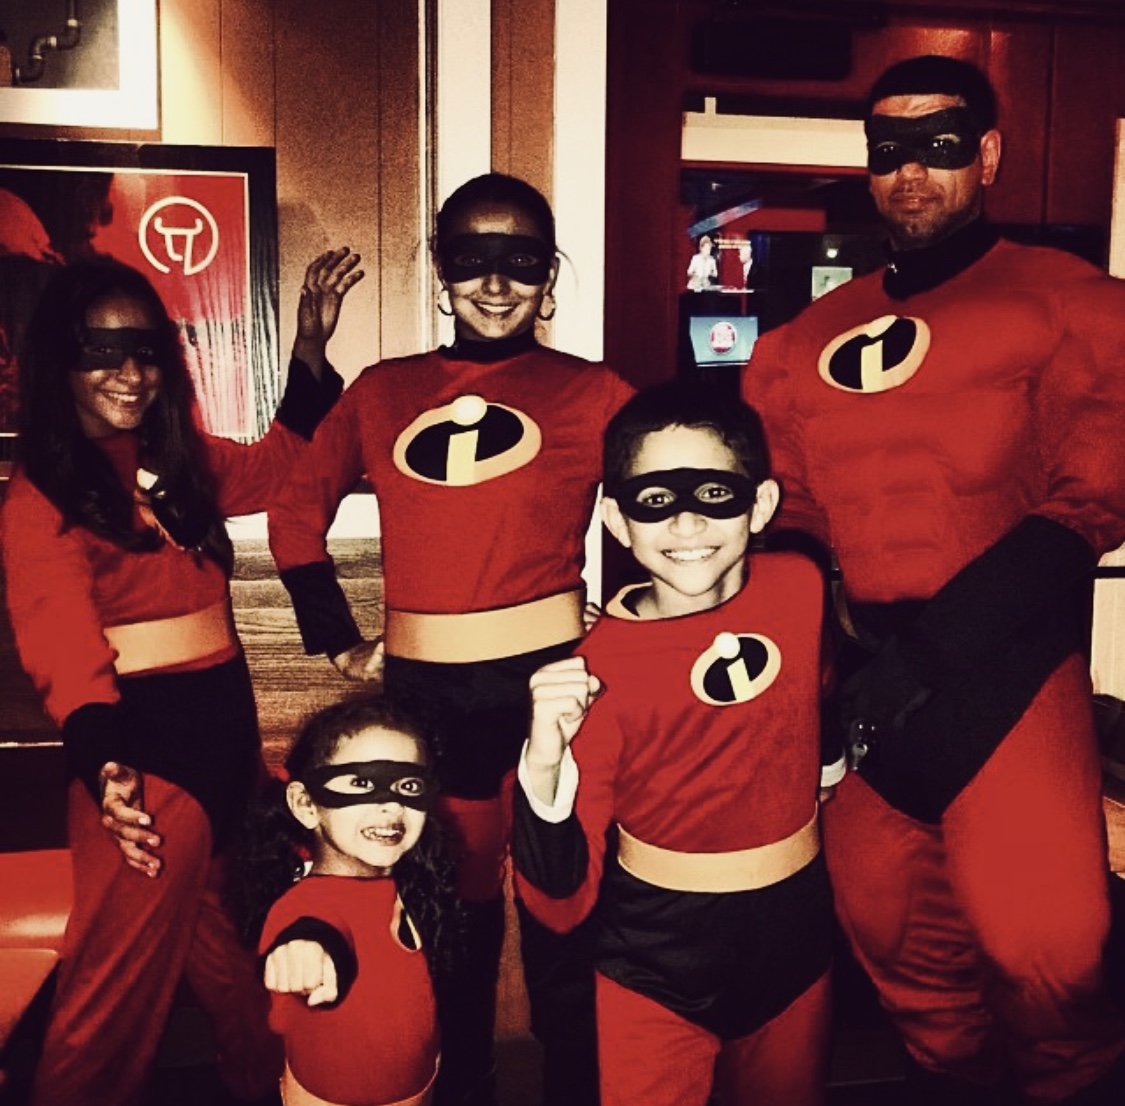 Halloween 2014: The Incredibles